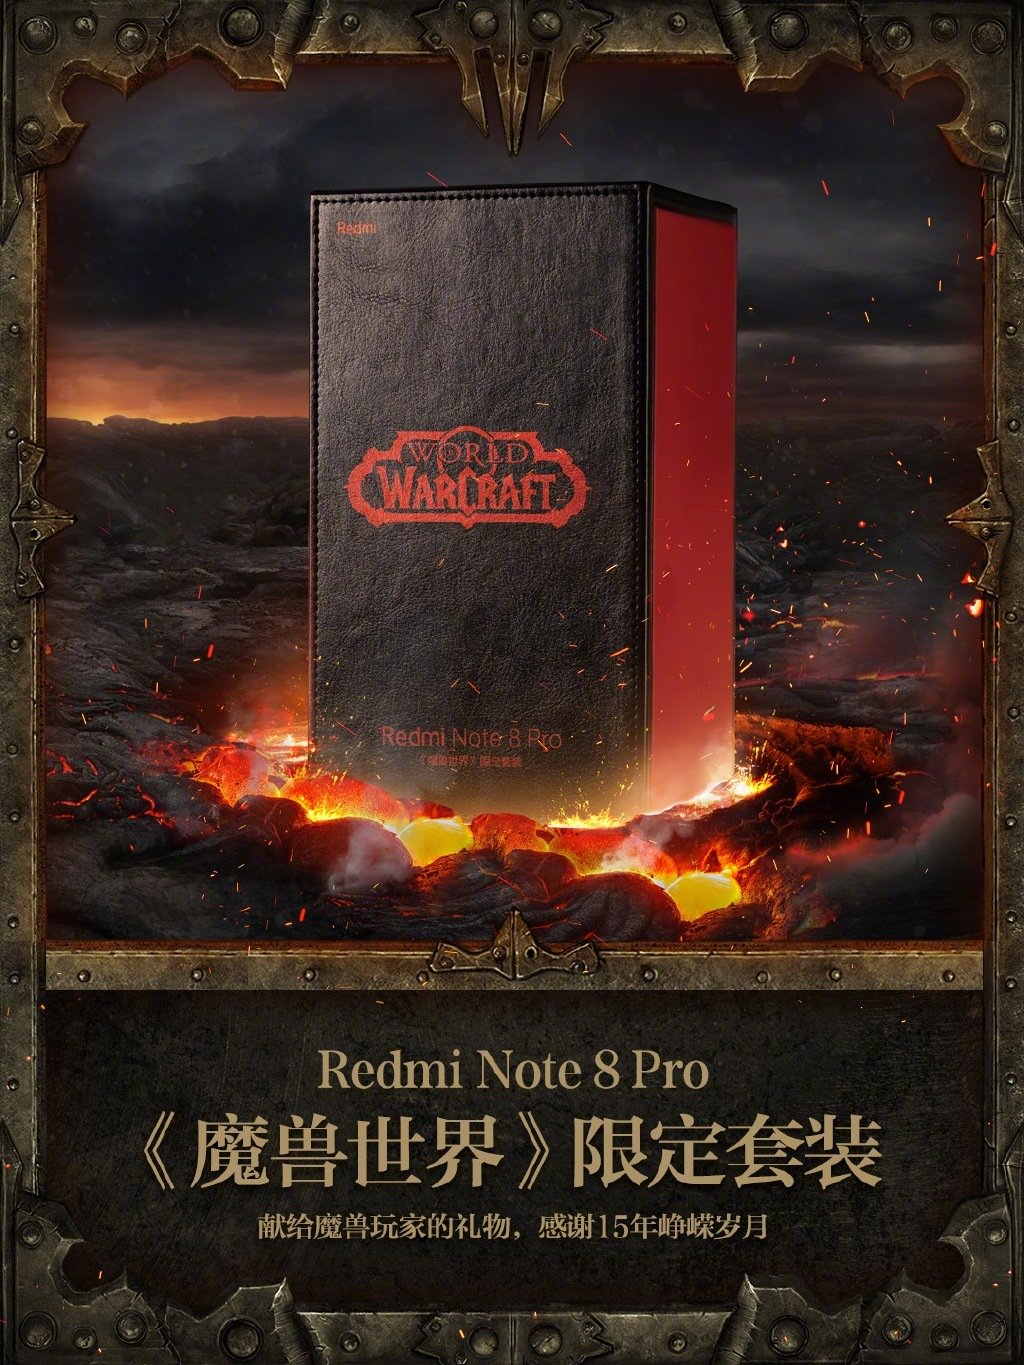 Redmi-Note-8-Pro-World-of-Warcraft-Limited-Edition-a